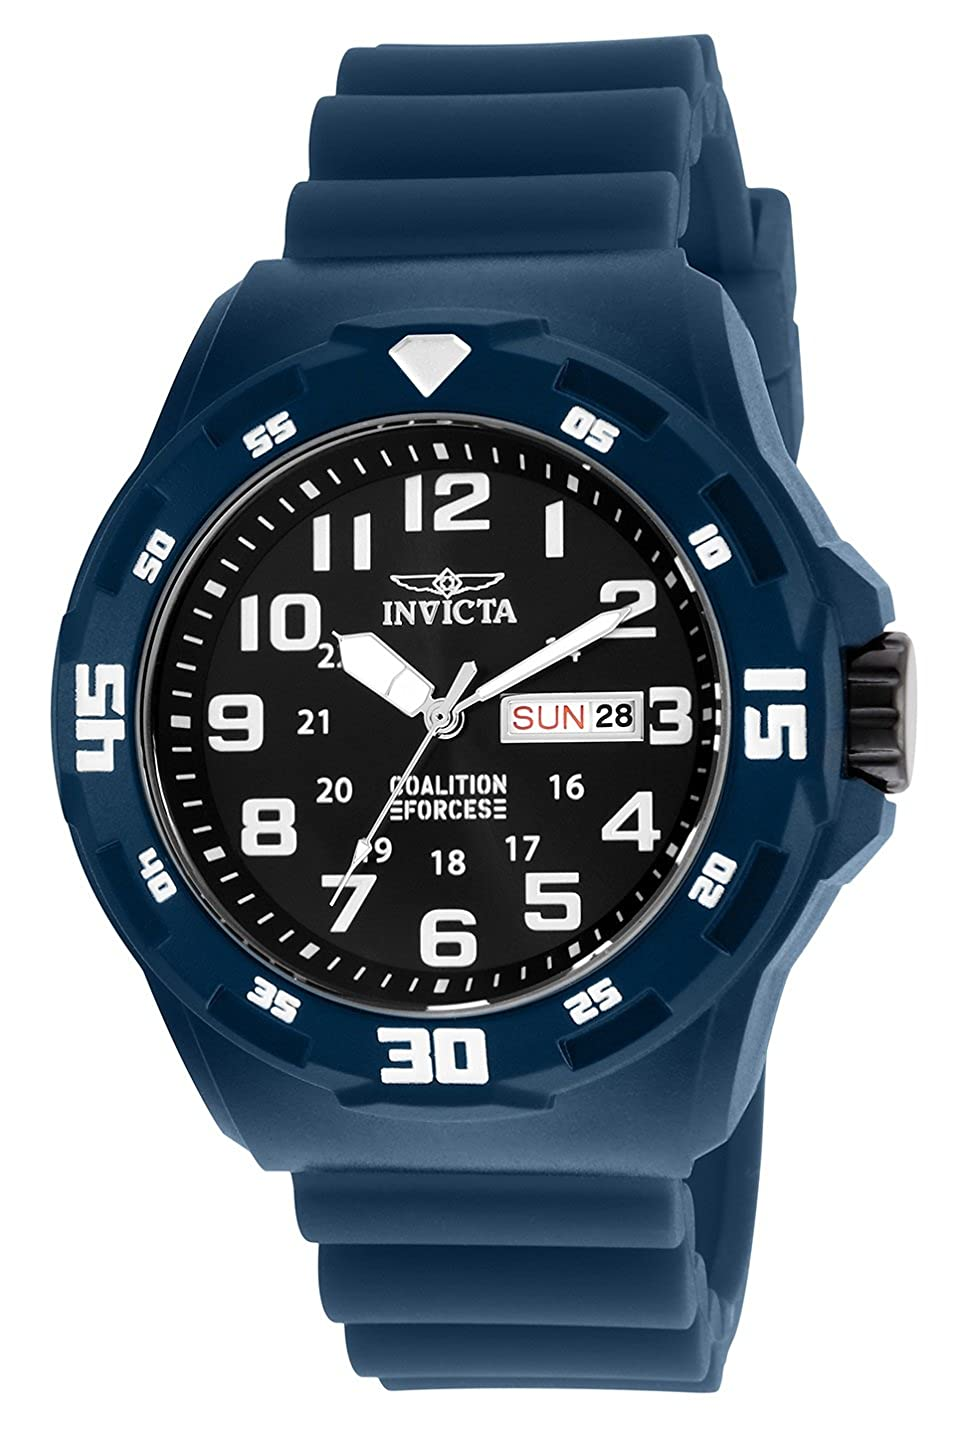 Amazon.com: Invicta Mens Coalition Forces Stainless Steel Quartz Watch with Silicone Strap, Blue, 18 (Model: 25324: Invicta: Watches